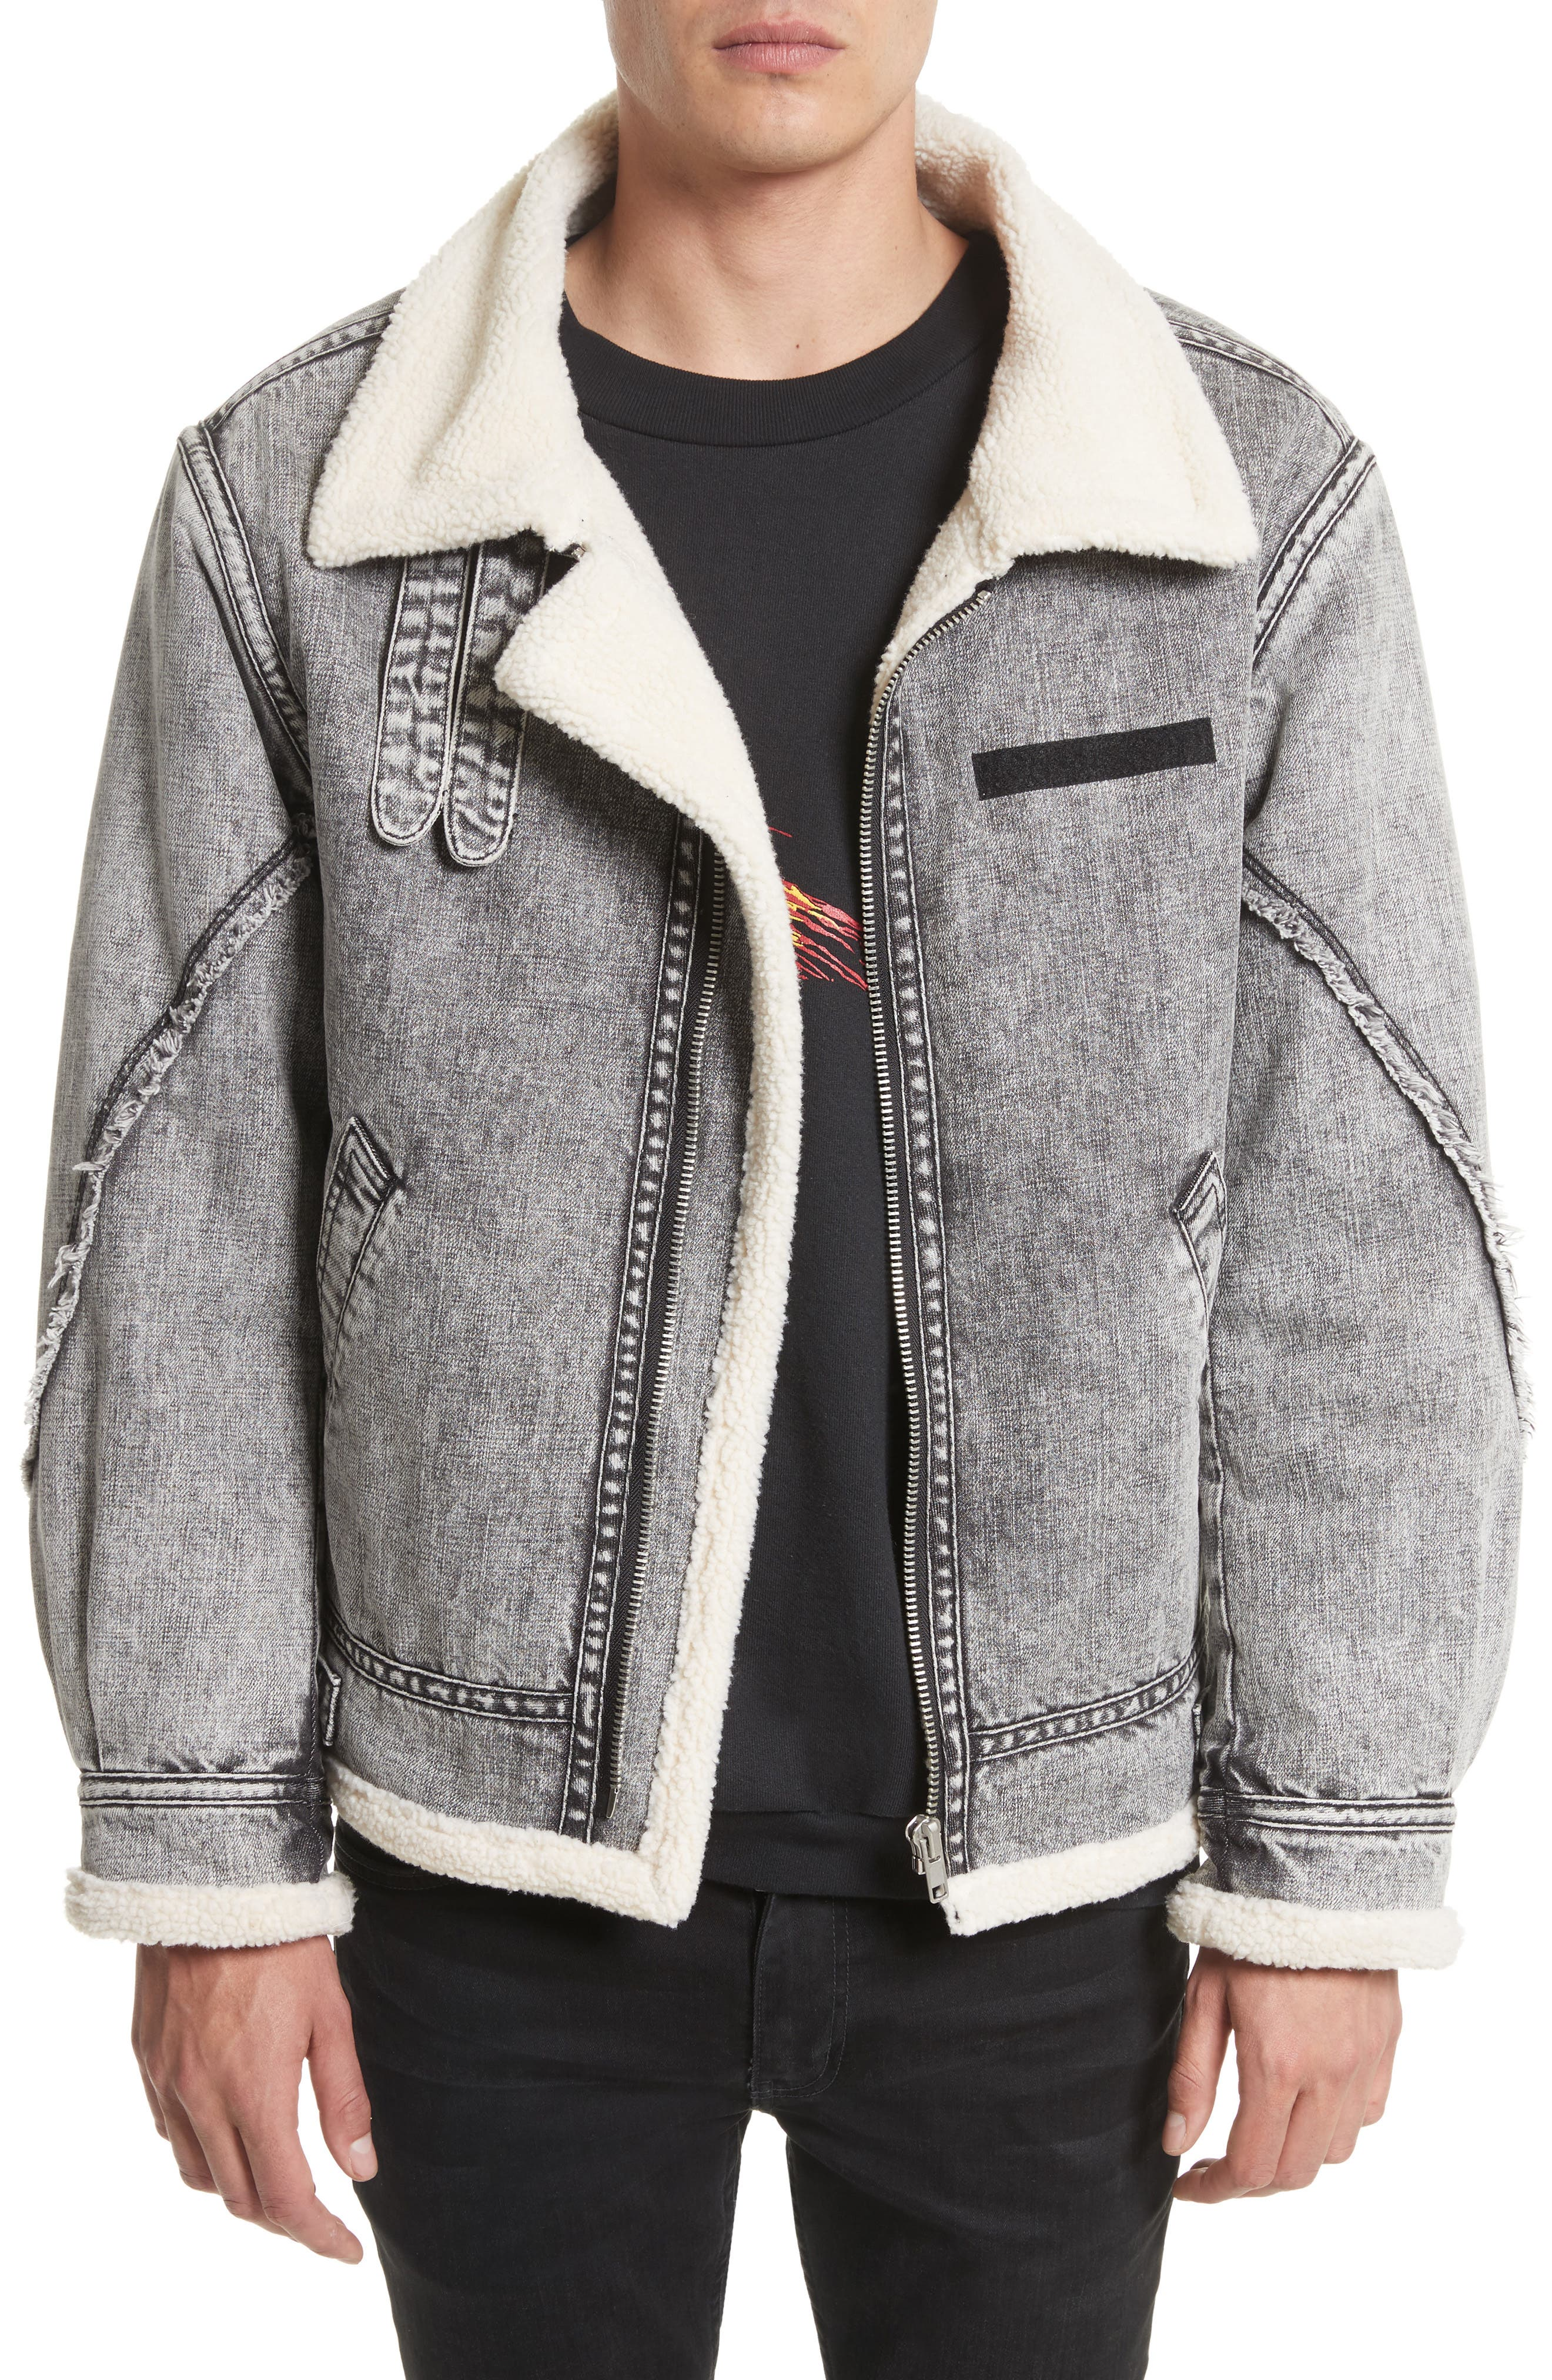 Alternate Image 1 Selected - Drifter Denim Bomber Jacket